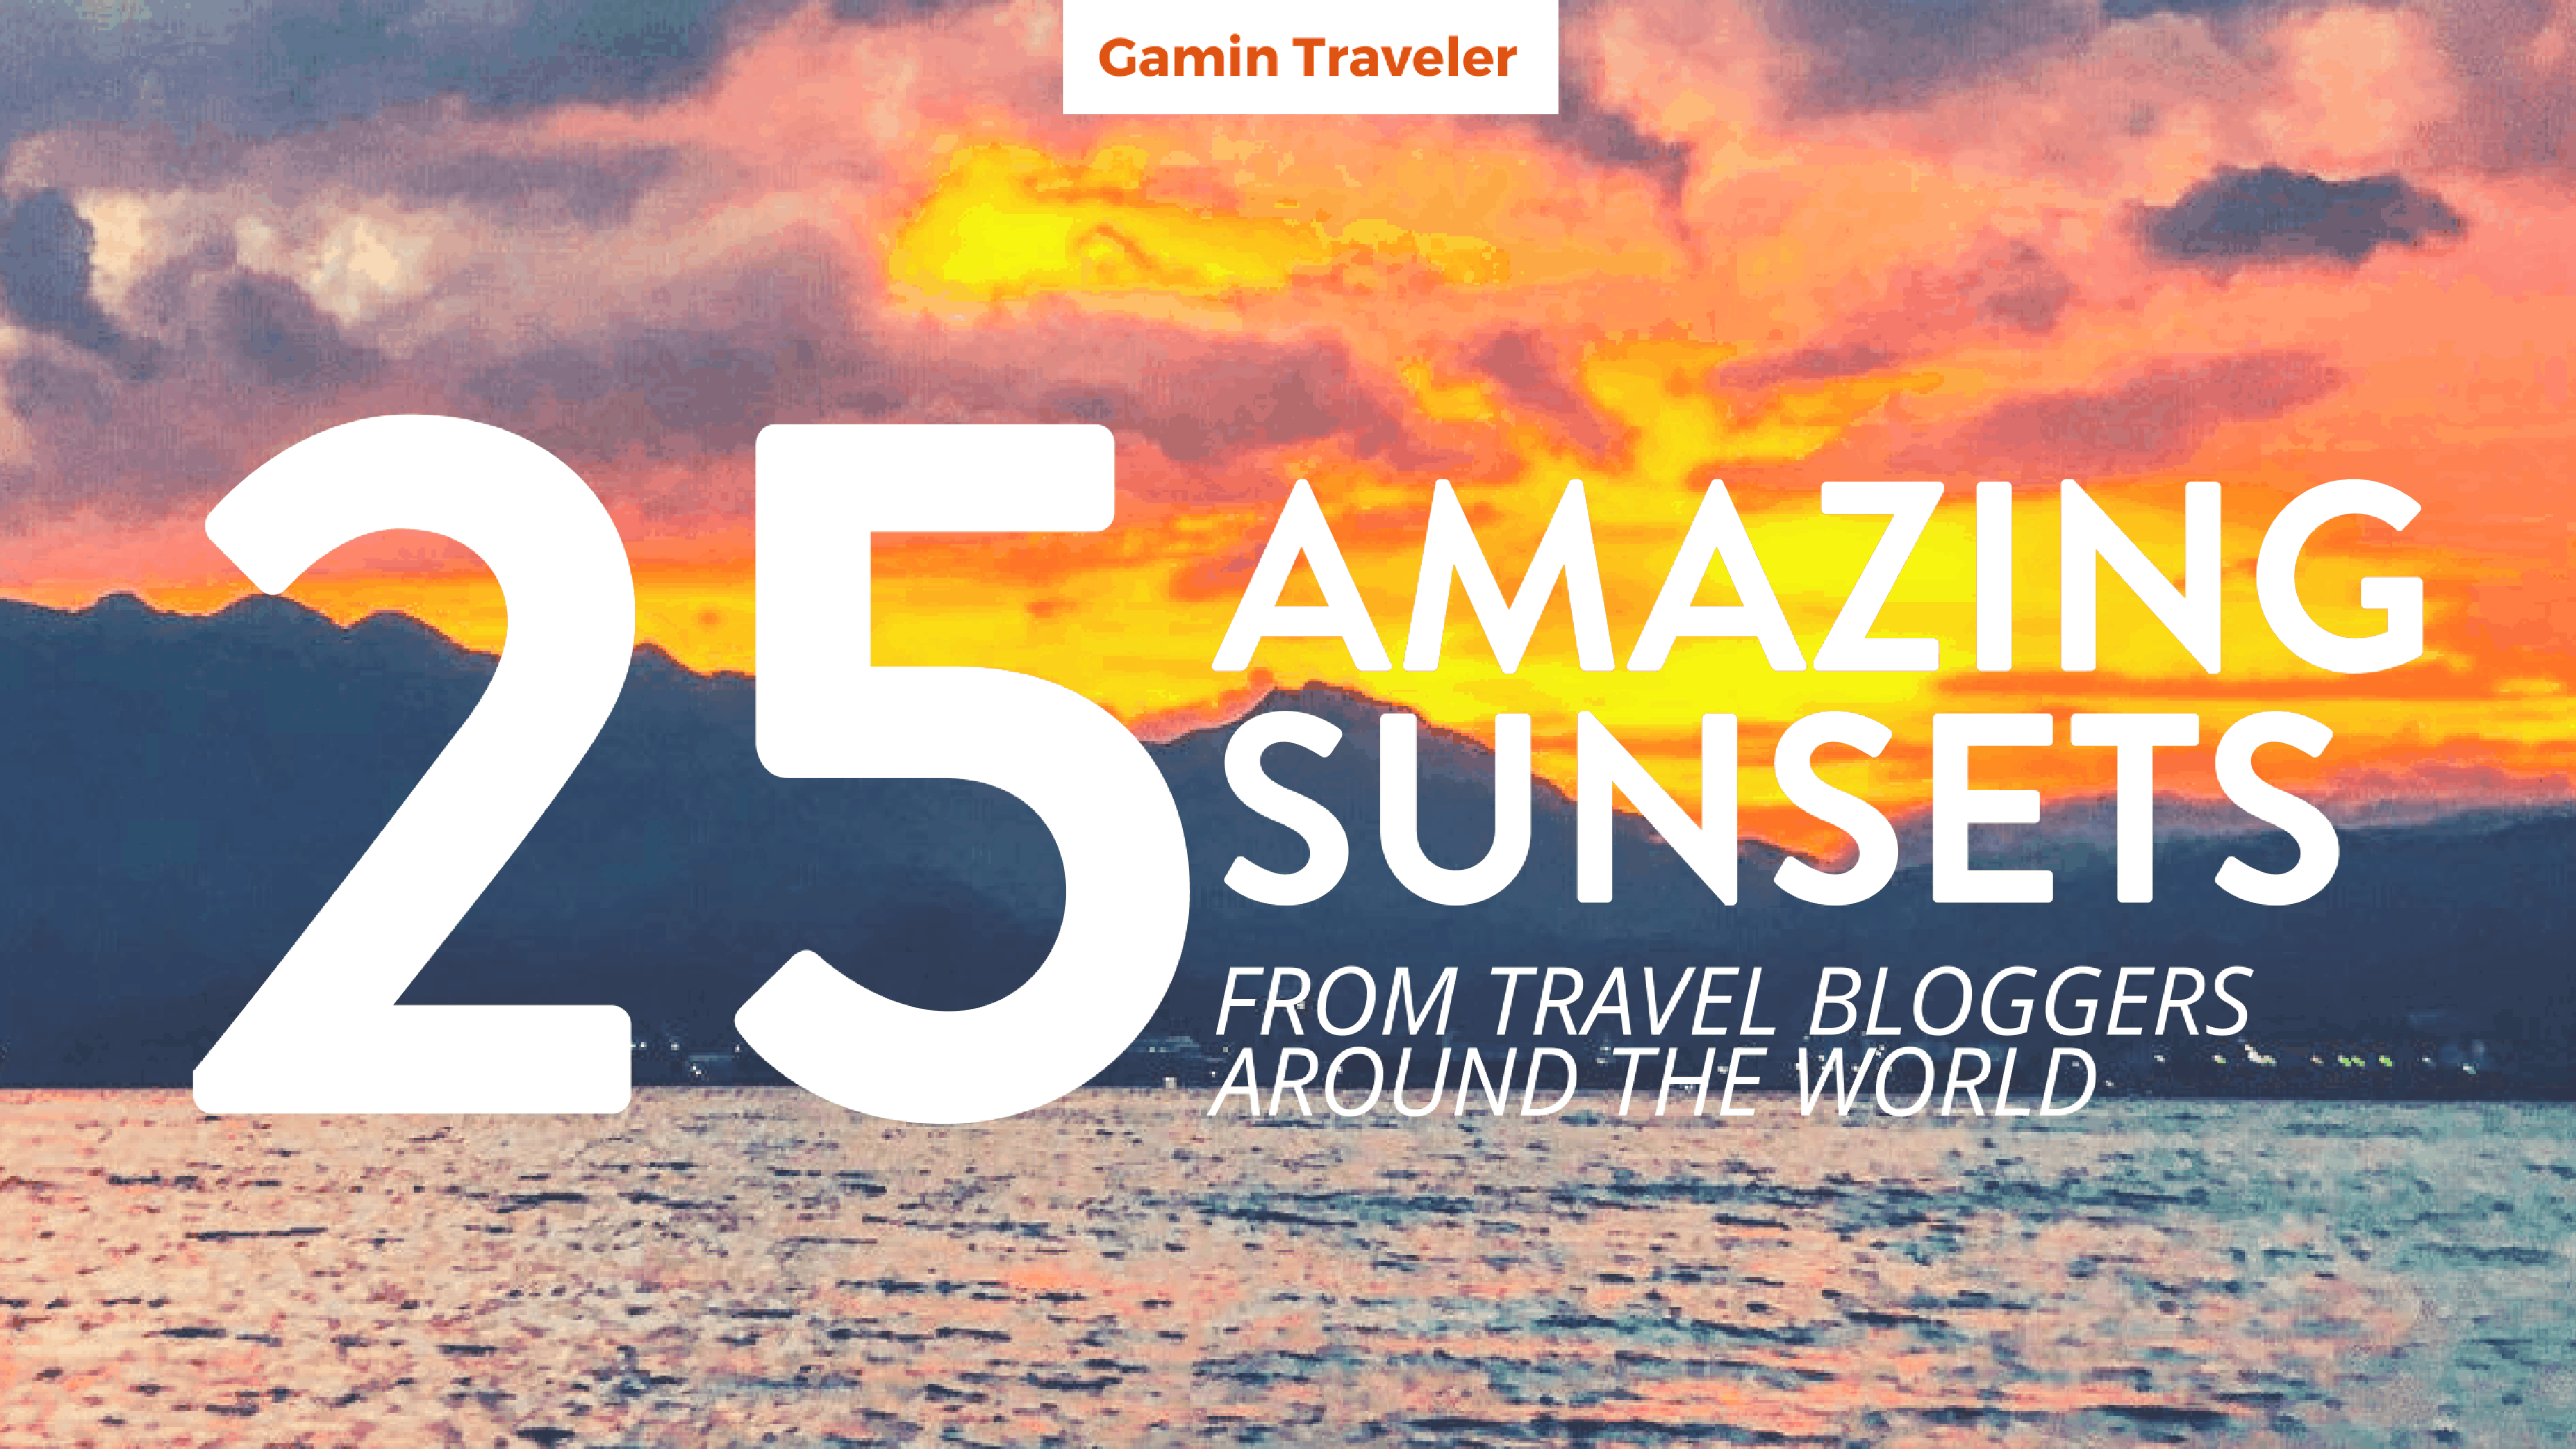 amazing-sunsets-from-travelers-all-over-the-world-gamintraveler-collaboration-post-on-facebook